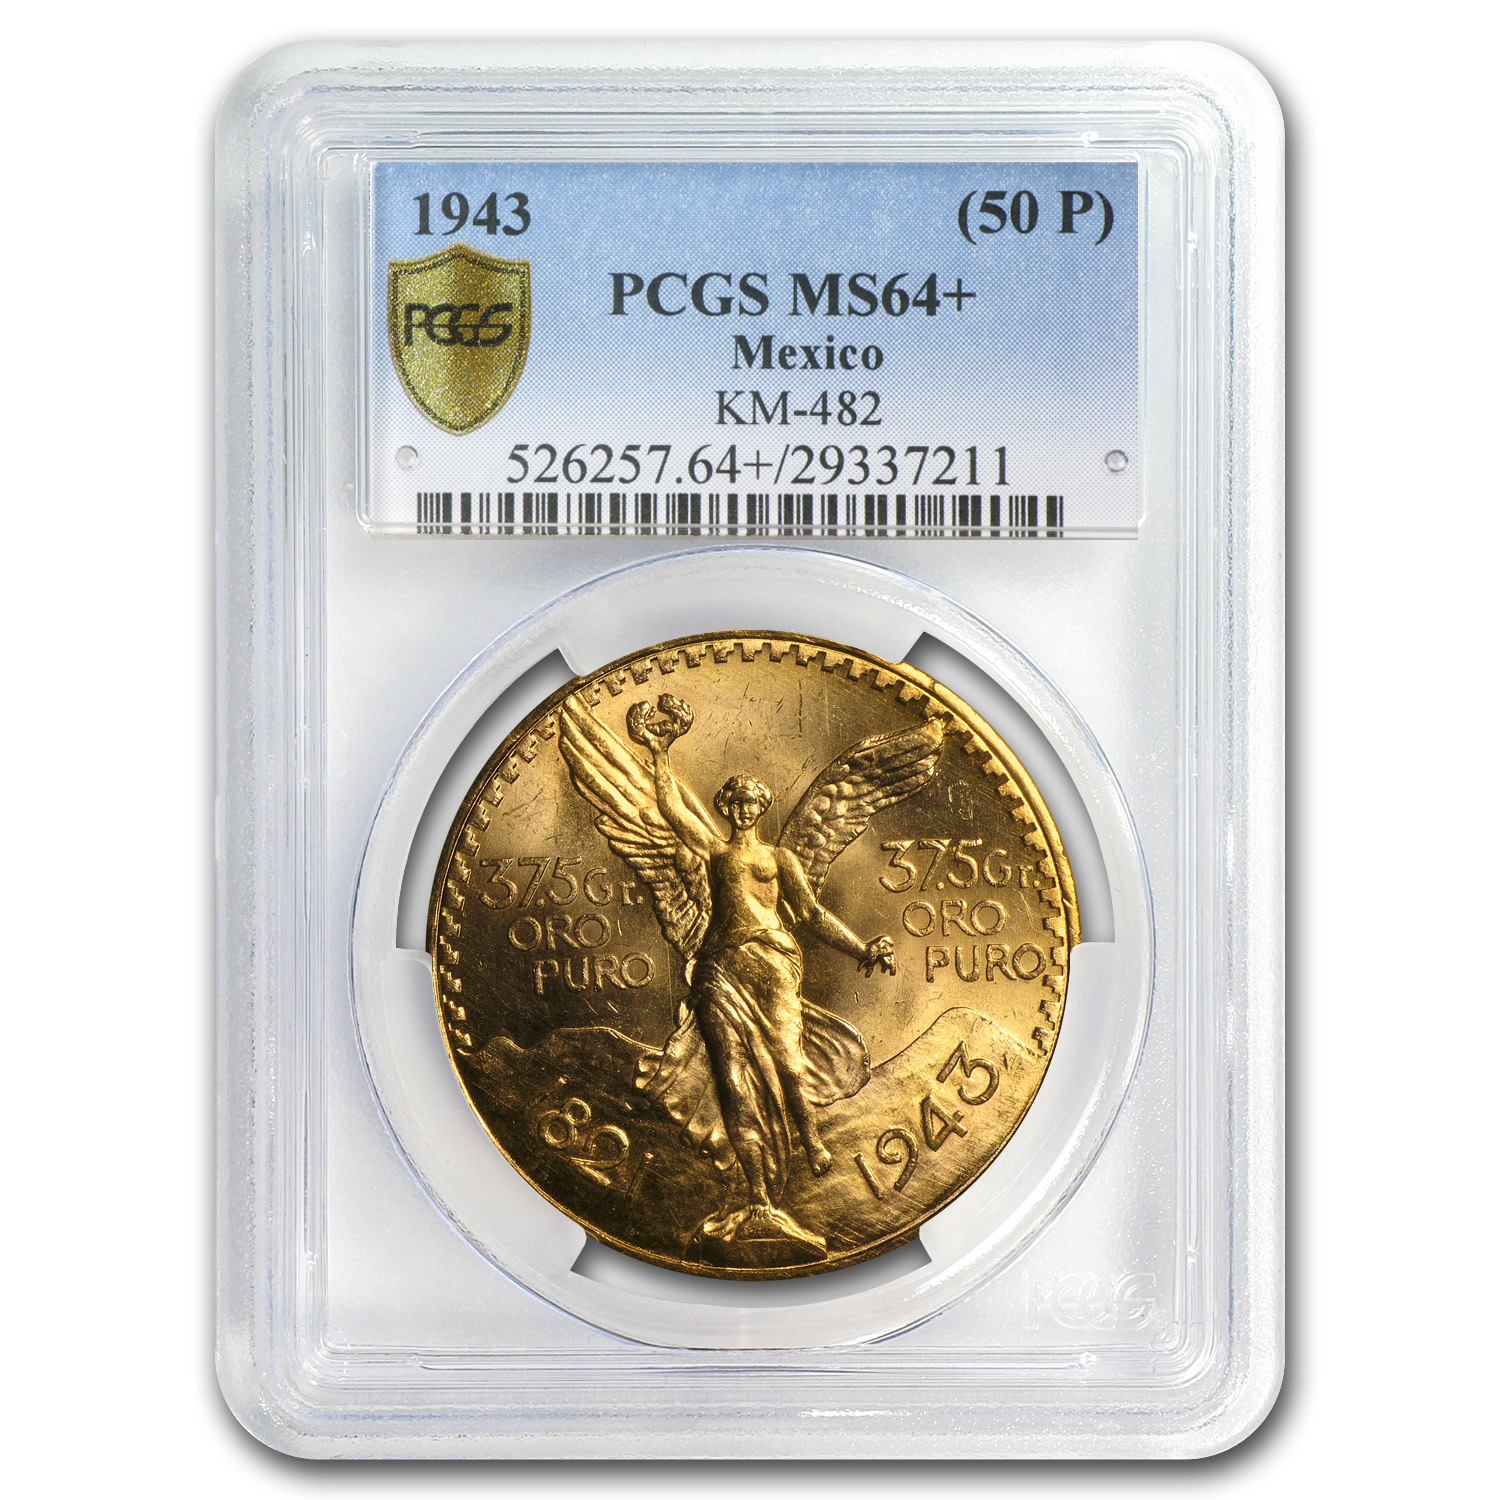 Mexico 1943 50 Pesos Gold MS-64+ PCGS (Secure Plus)